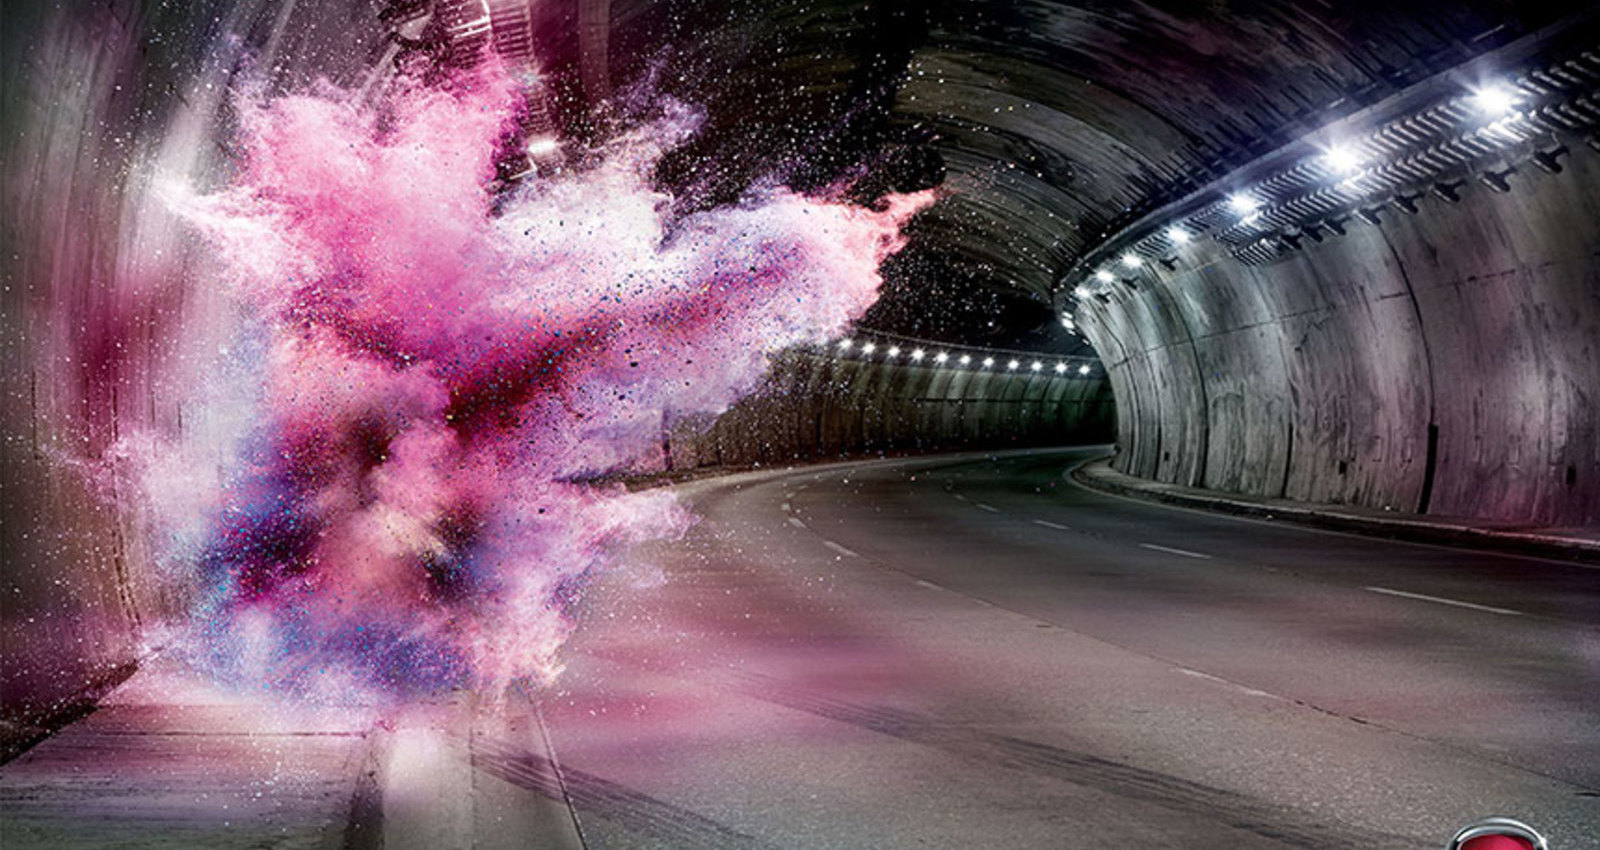 Don't make-up and drive: Tunnel